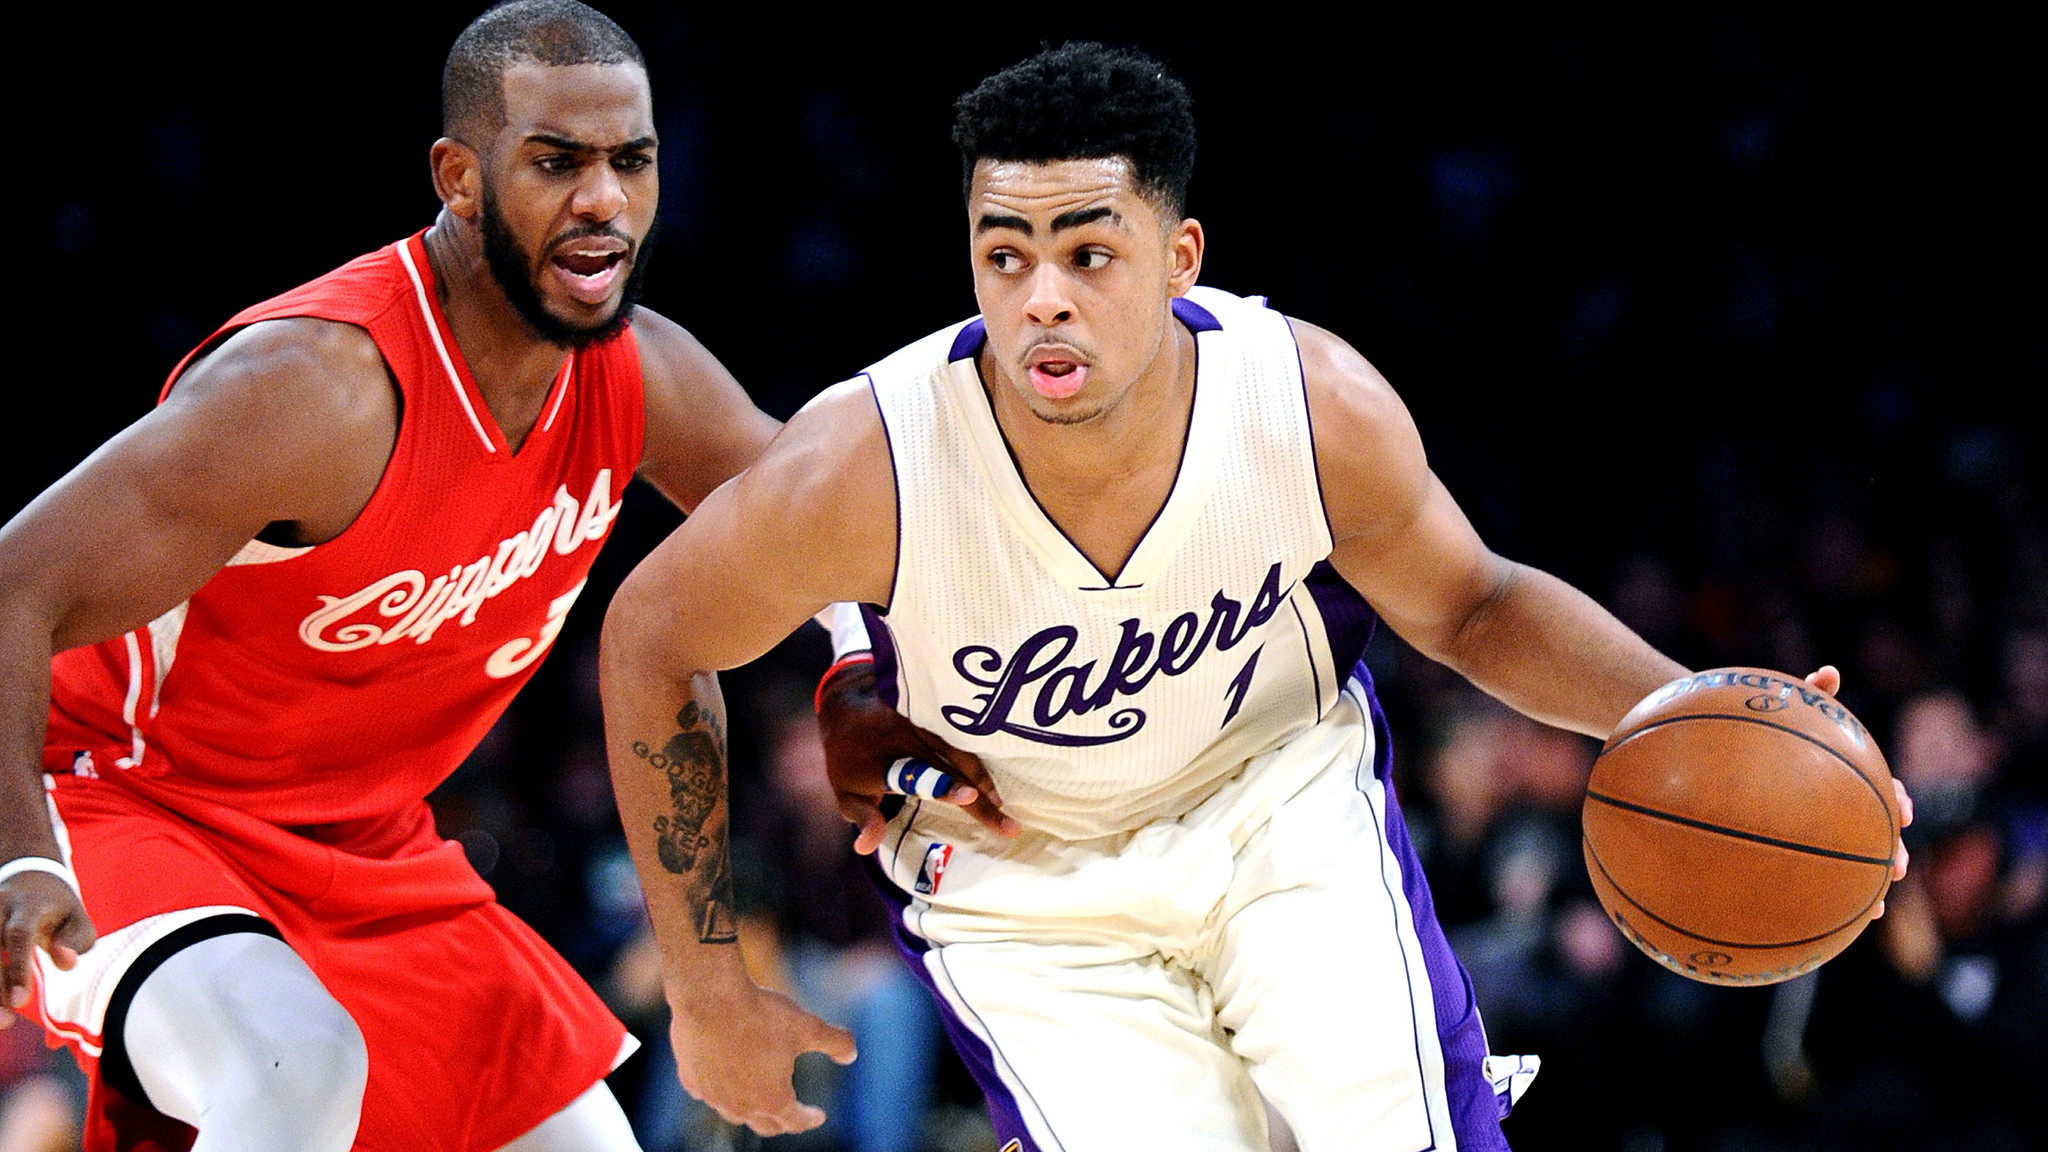 lakers vs clippers - photo #36